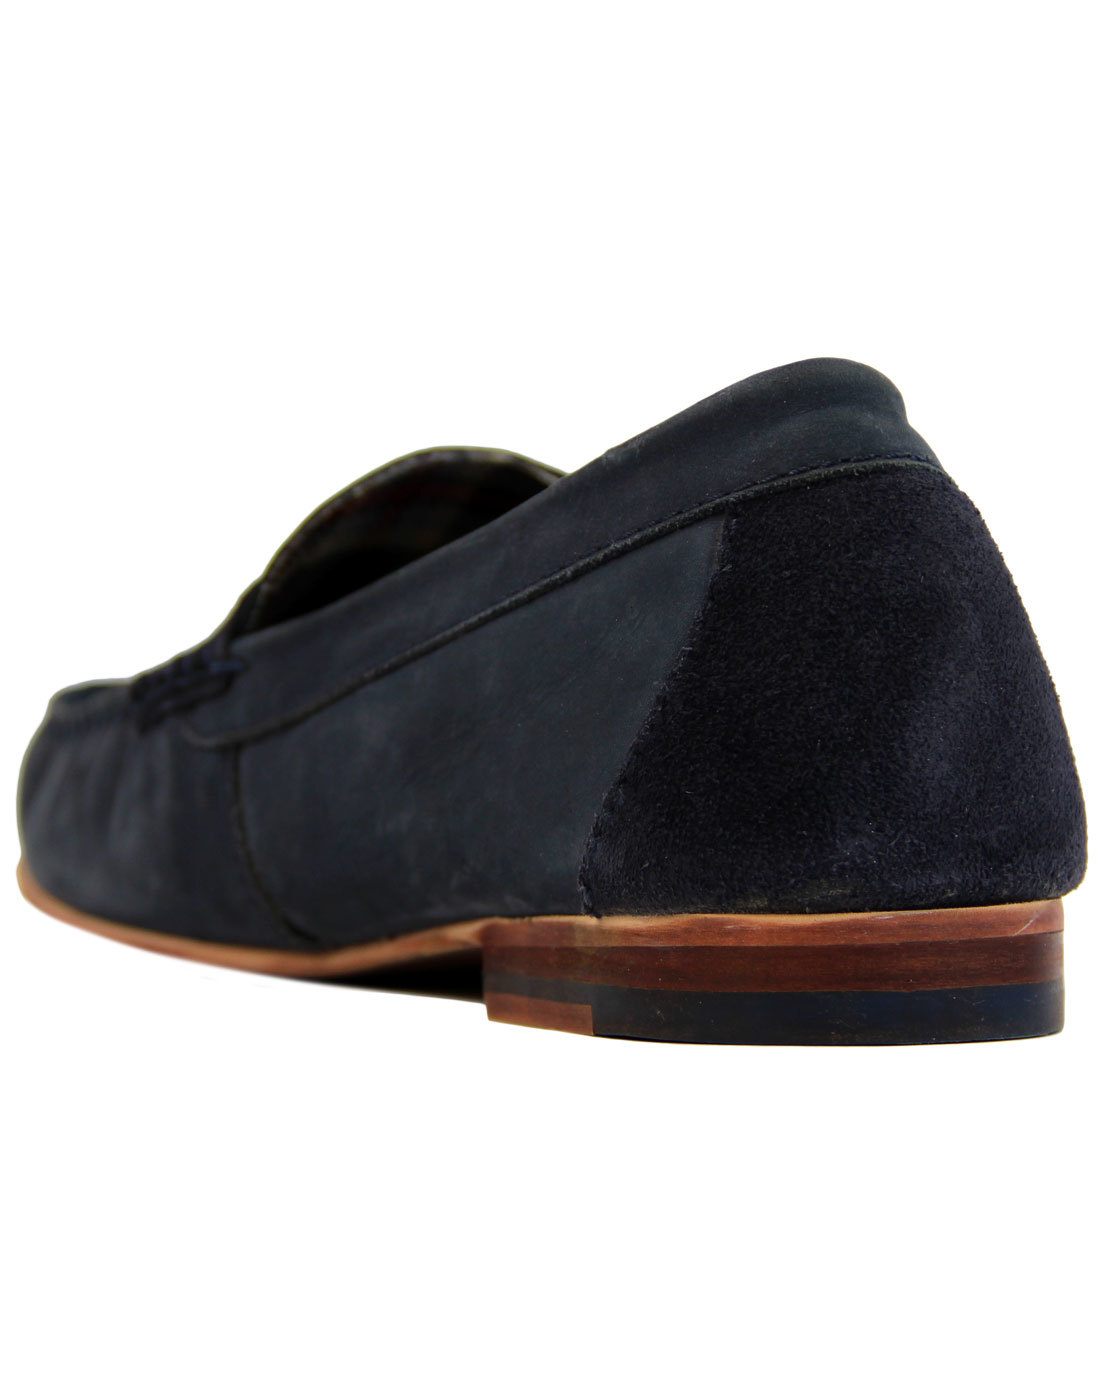 7acd3aa5498 PAOLO VANDINI Rushil Retro 1960s Mod Nubuck Penny Loafers in Navy